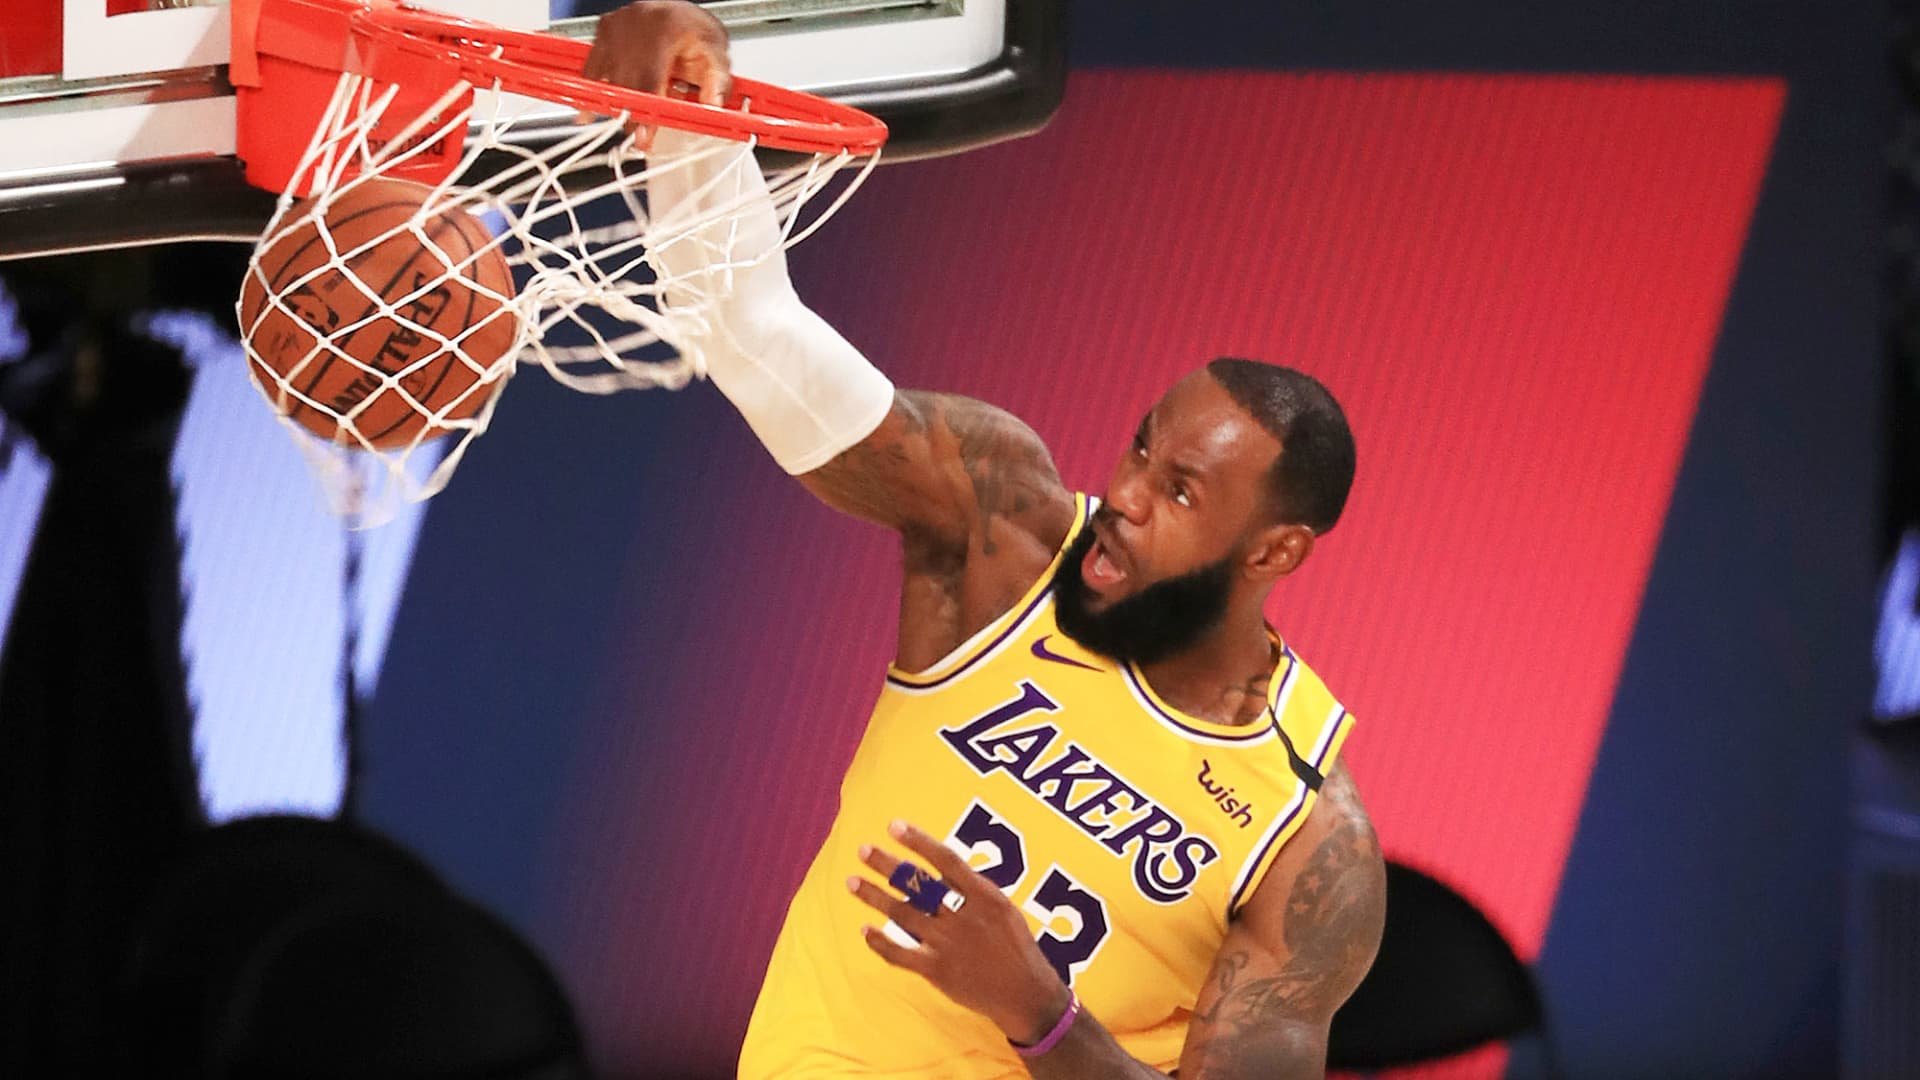 LeBron James of the Los Angeles Lakers at a game against the LA Clippers at ESPN Wide World Of Sports Complex on July 30, 2020 in Lake Buena Vista, Florida.